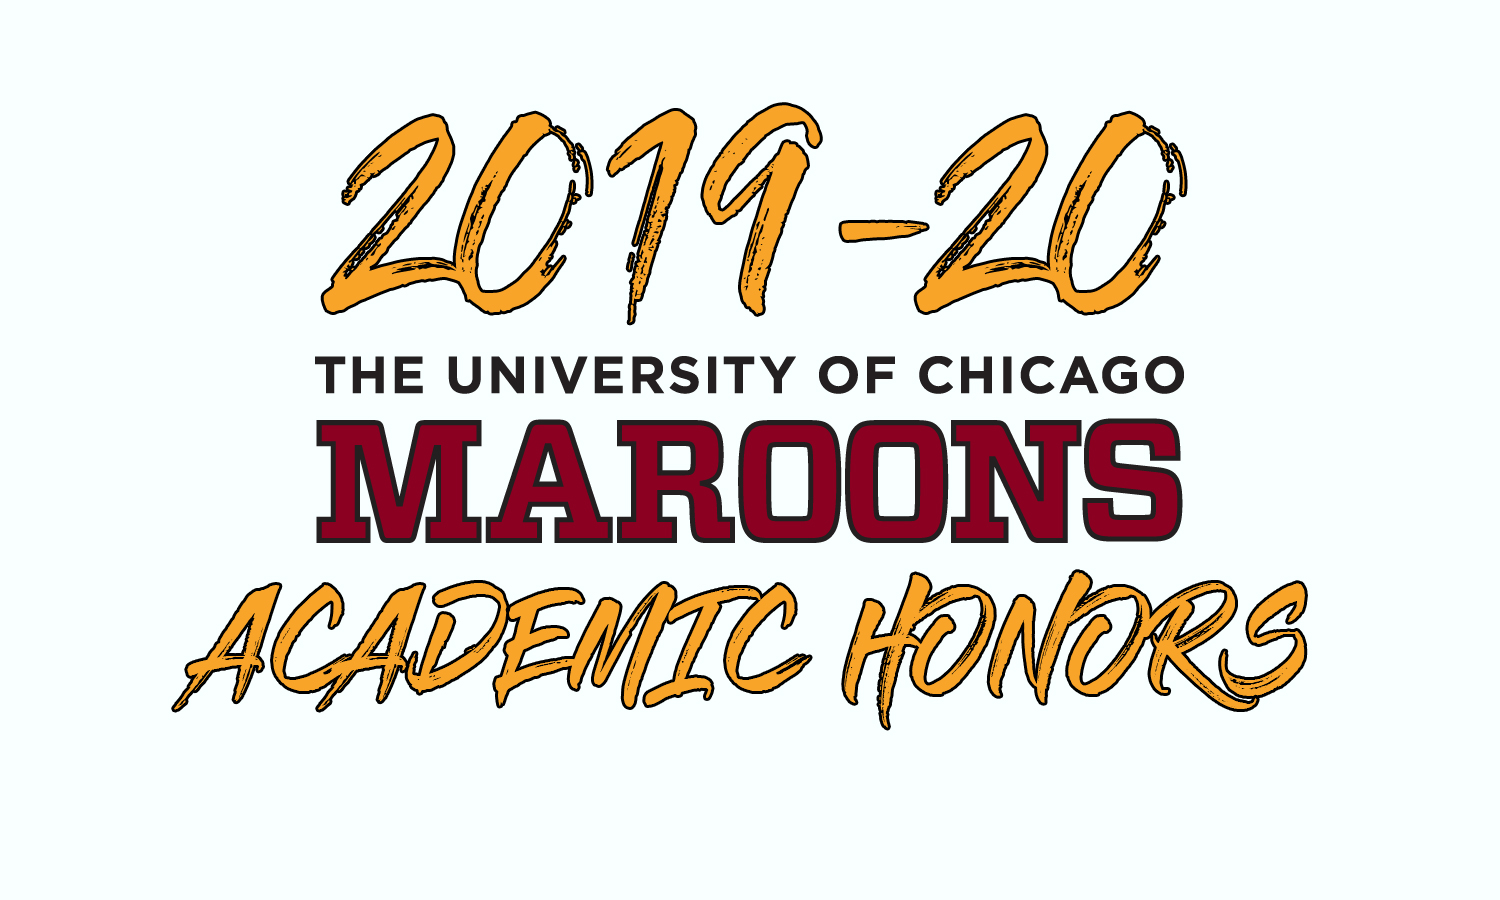 2019-20 Maroon Academic Honors